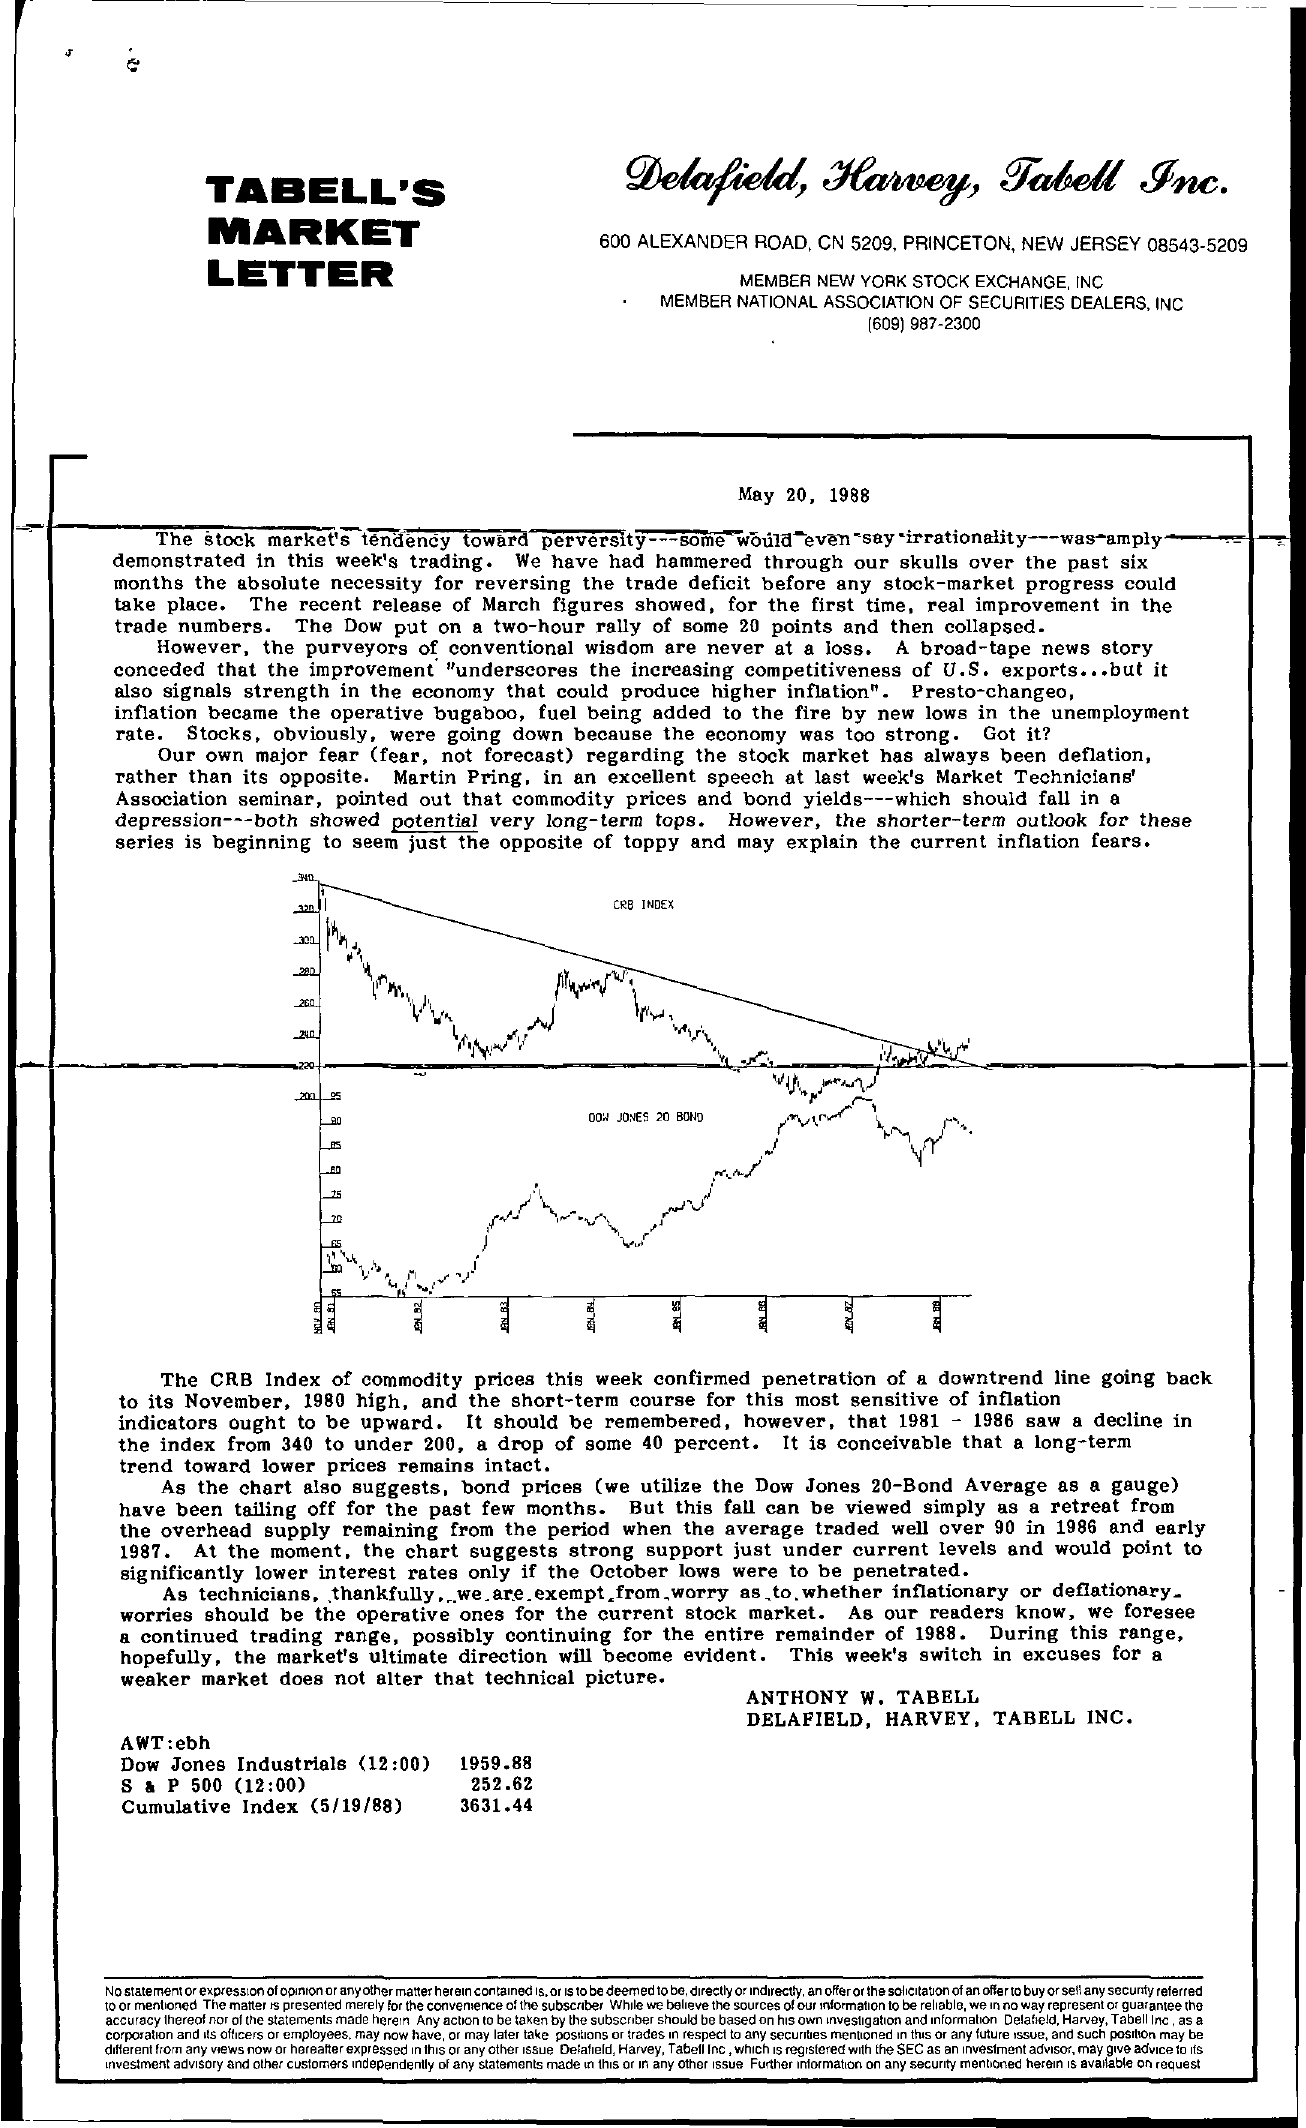 Tabell's Market Letter - May 20, 1988